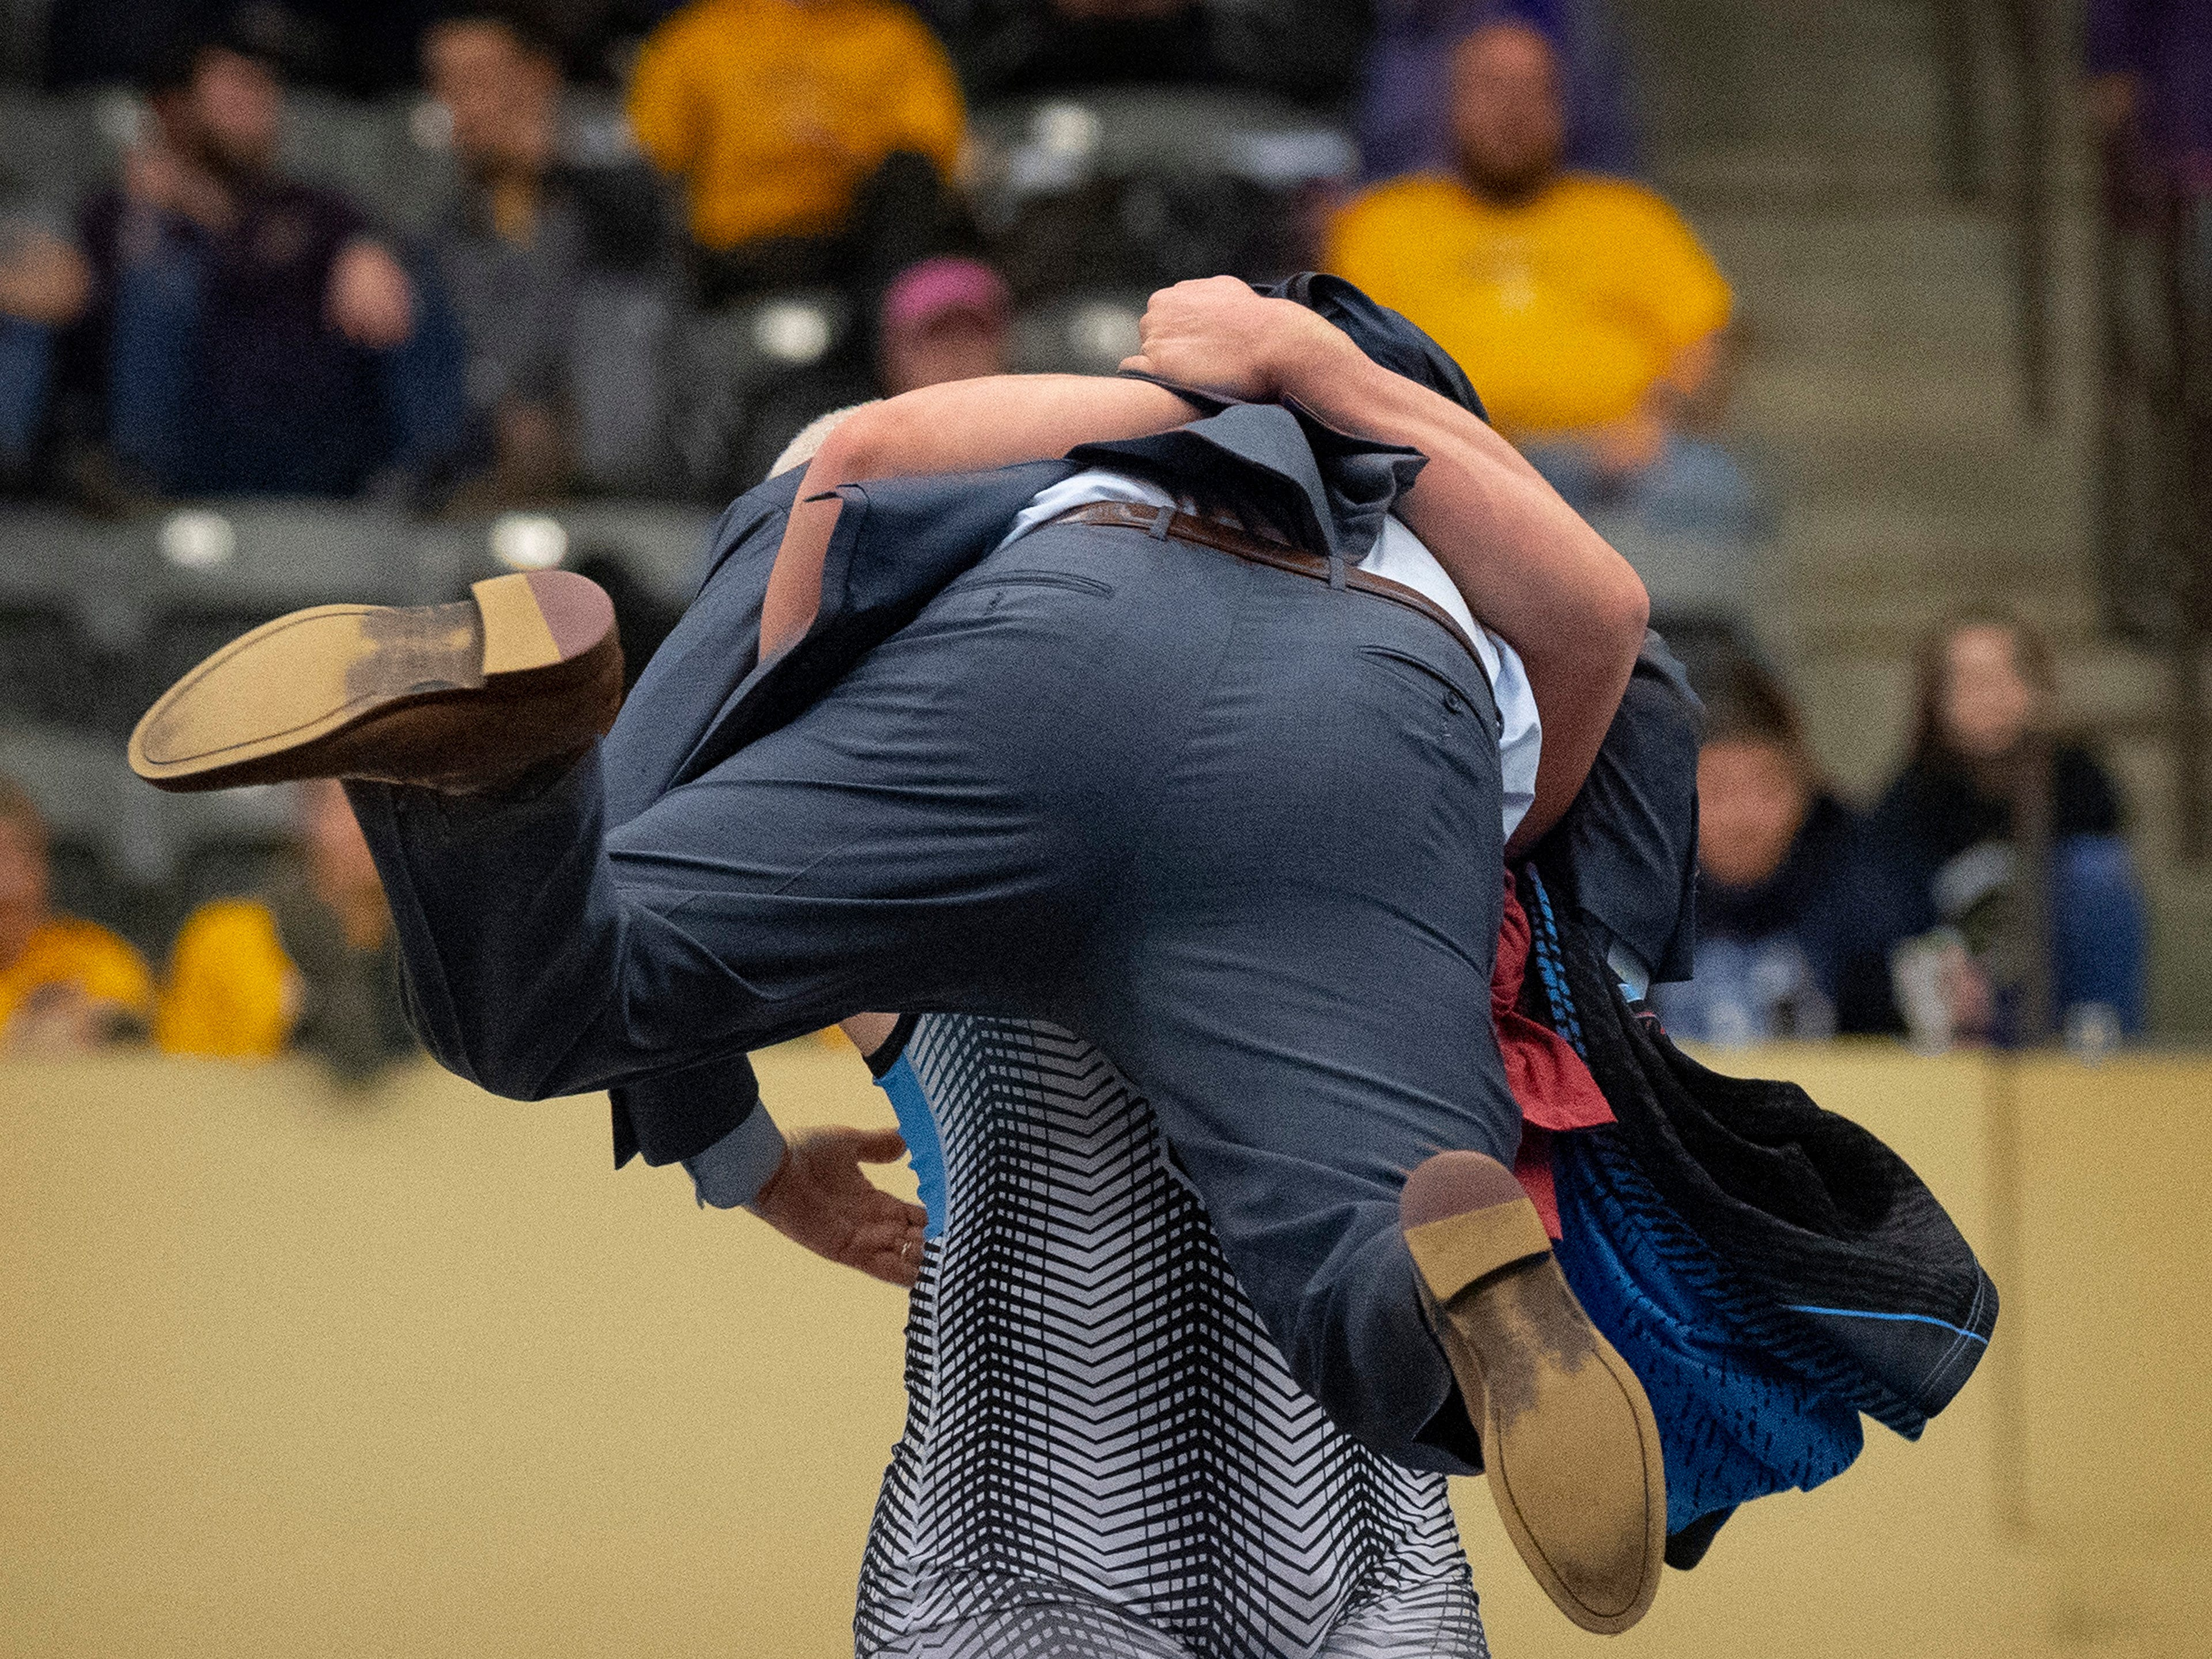 Union County head coach (and dad) Robert Ervin is lifted into the air by his son, Mathias Ervin, after winning the 220-pound championship match at the KHSAA State Wrestling Championships at the Alltech Arena in Lexington, Ky., Saturday afternoon. Ervin defeated Christian County's Niko Bussell with a 3-1 decision for his second state championship.